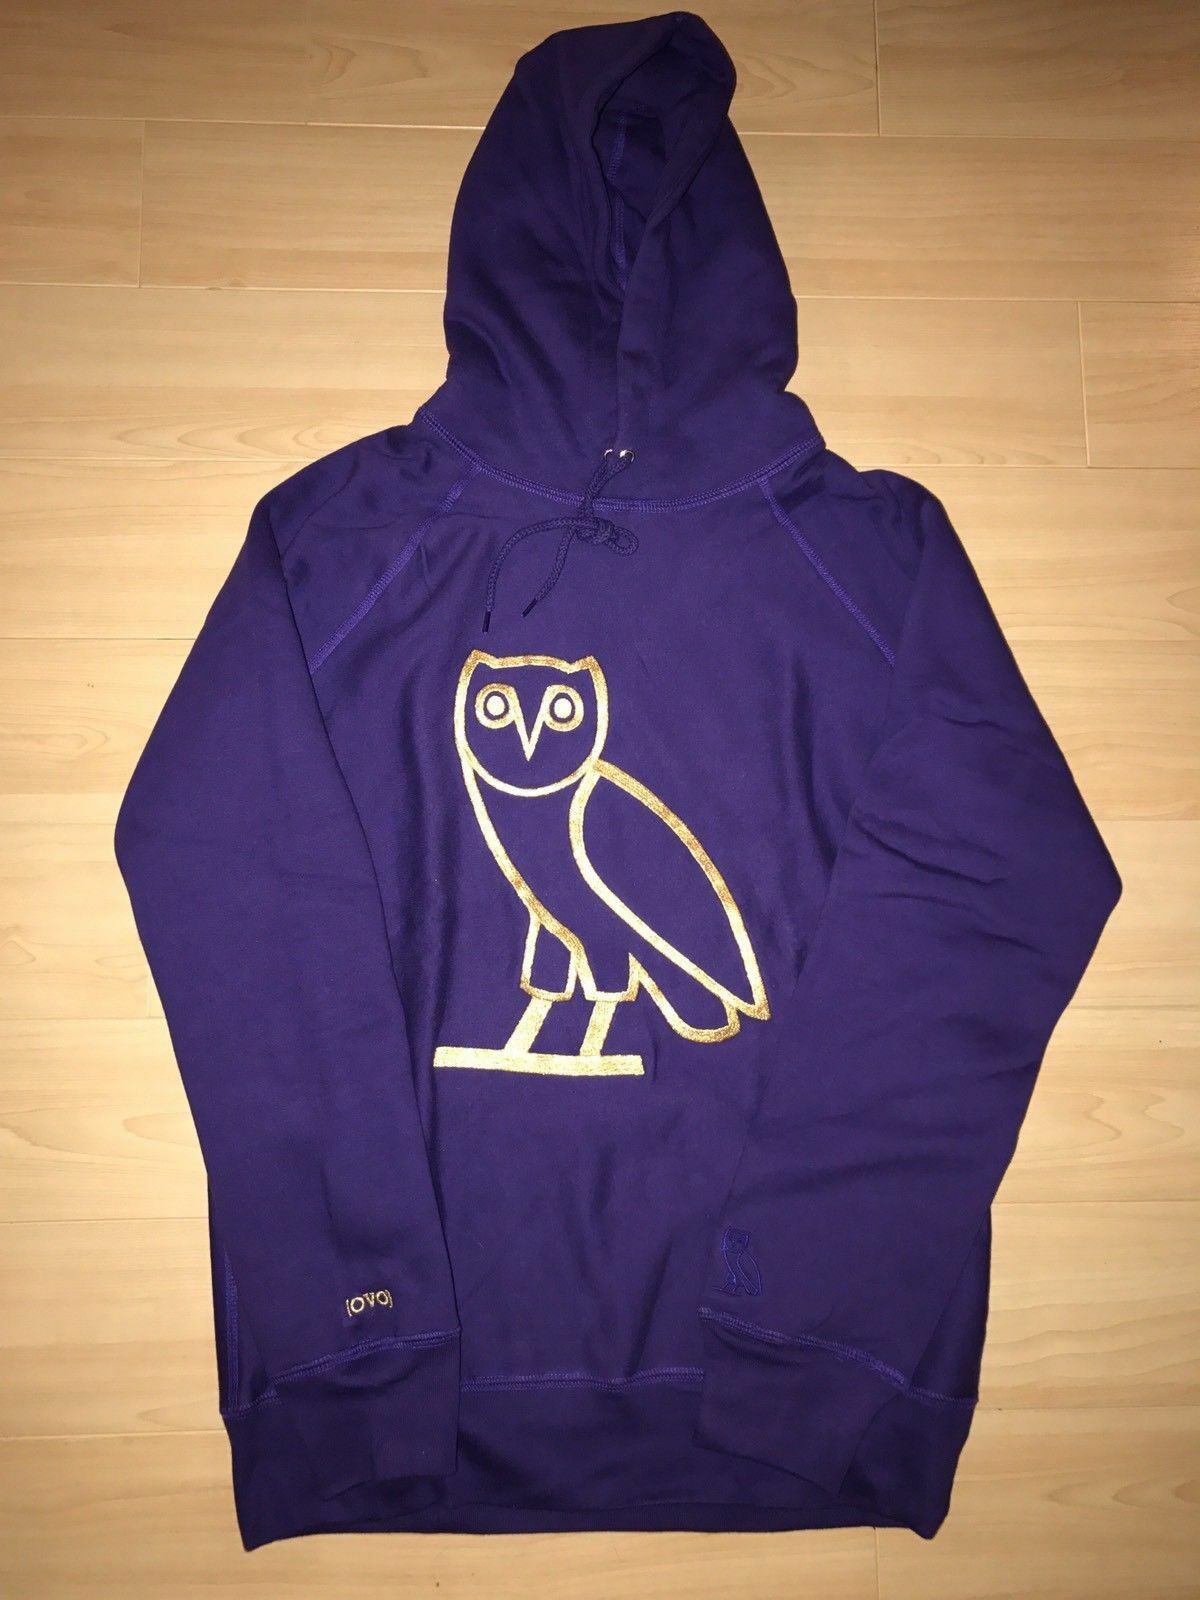 SIZE M - OVO Fest Owl OG gold Embroidered Hoodie Purple 2012 Take Care 1 50 MADE